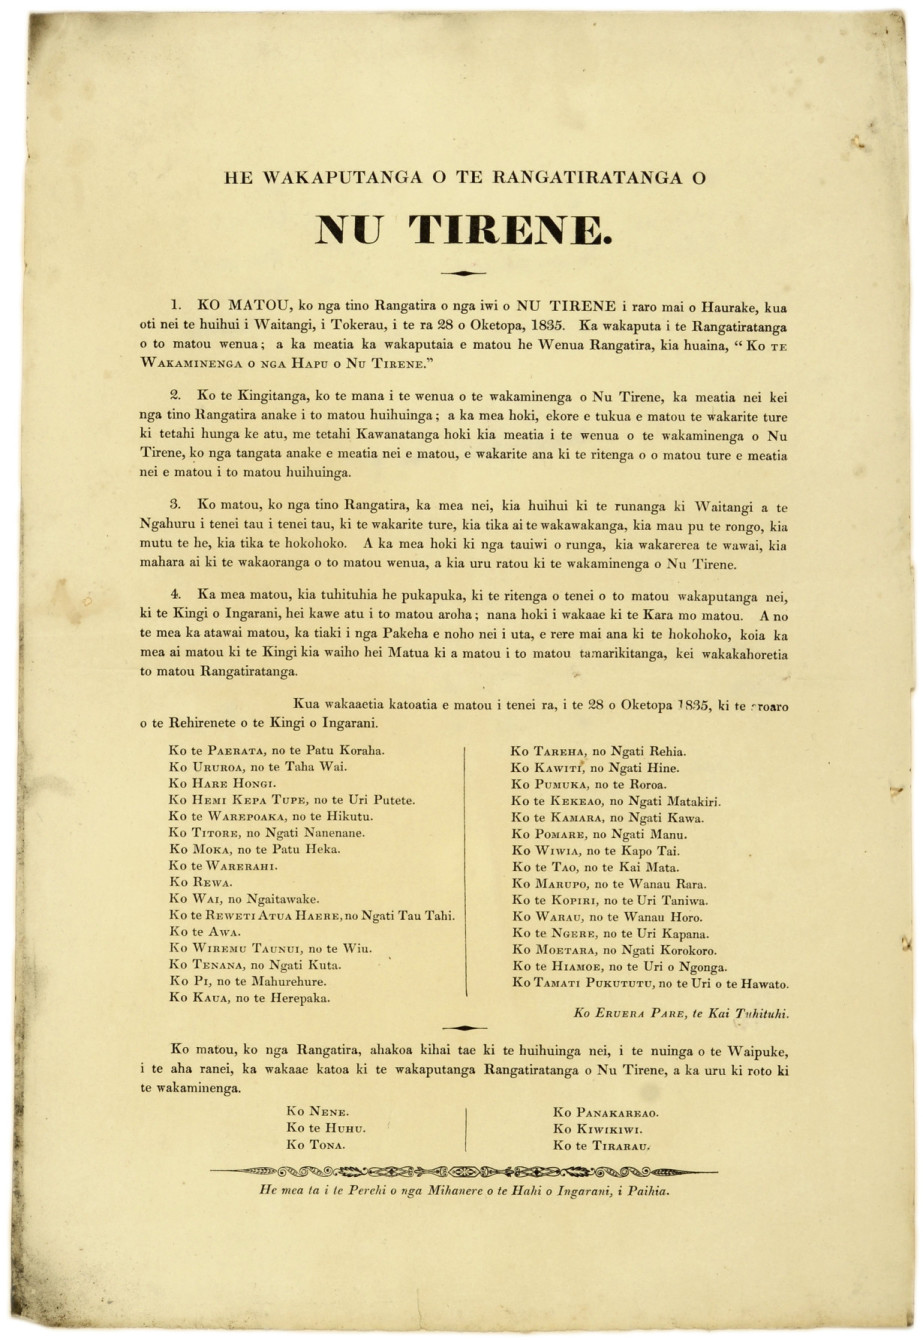 Printed copy of the Declaration of the Independence of the United Tribes of New Zealand